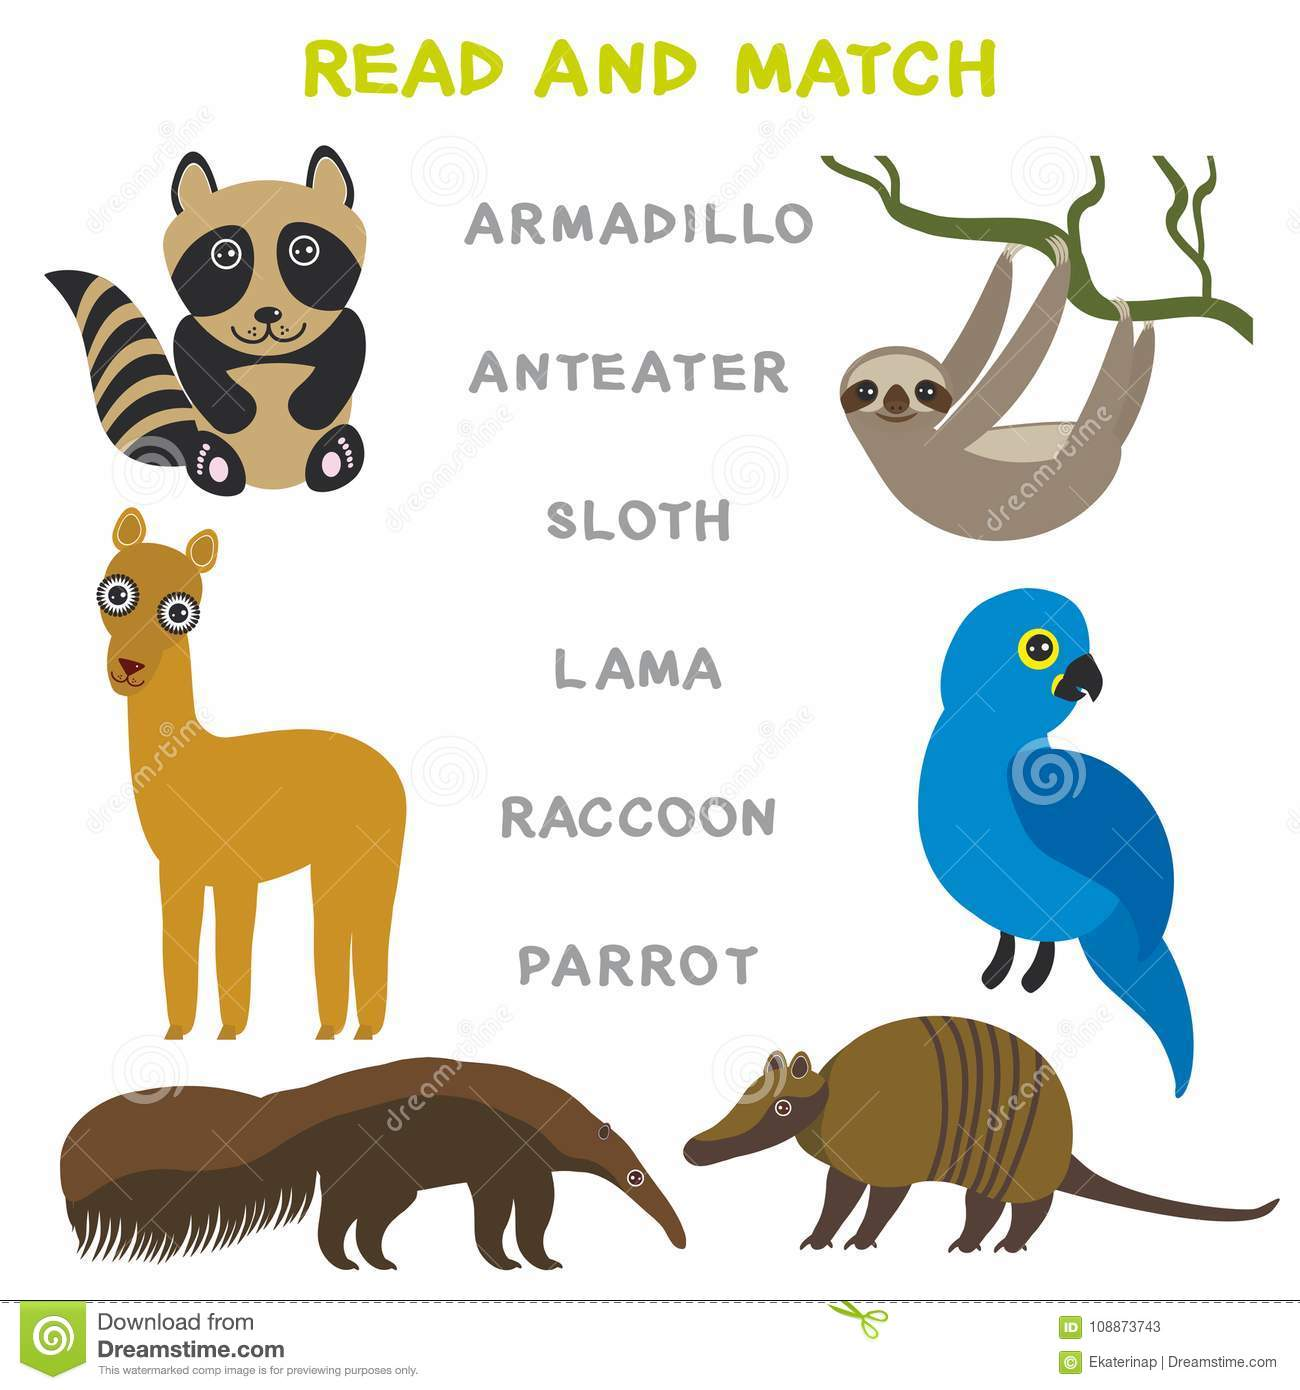 Kids Words Learning Game Worksheet Read And Match Funny Animals Armadillo Anteater Sloth Lama